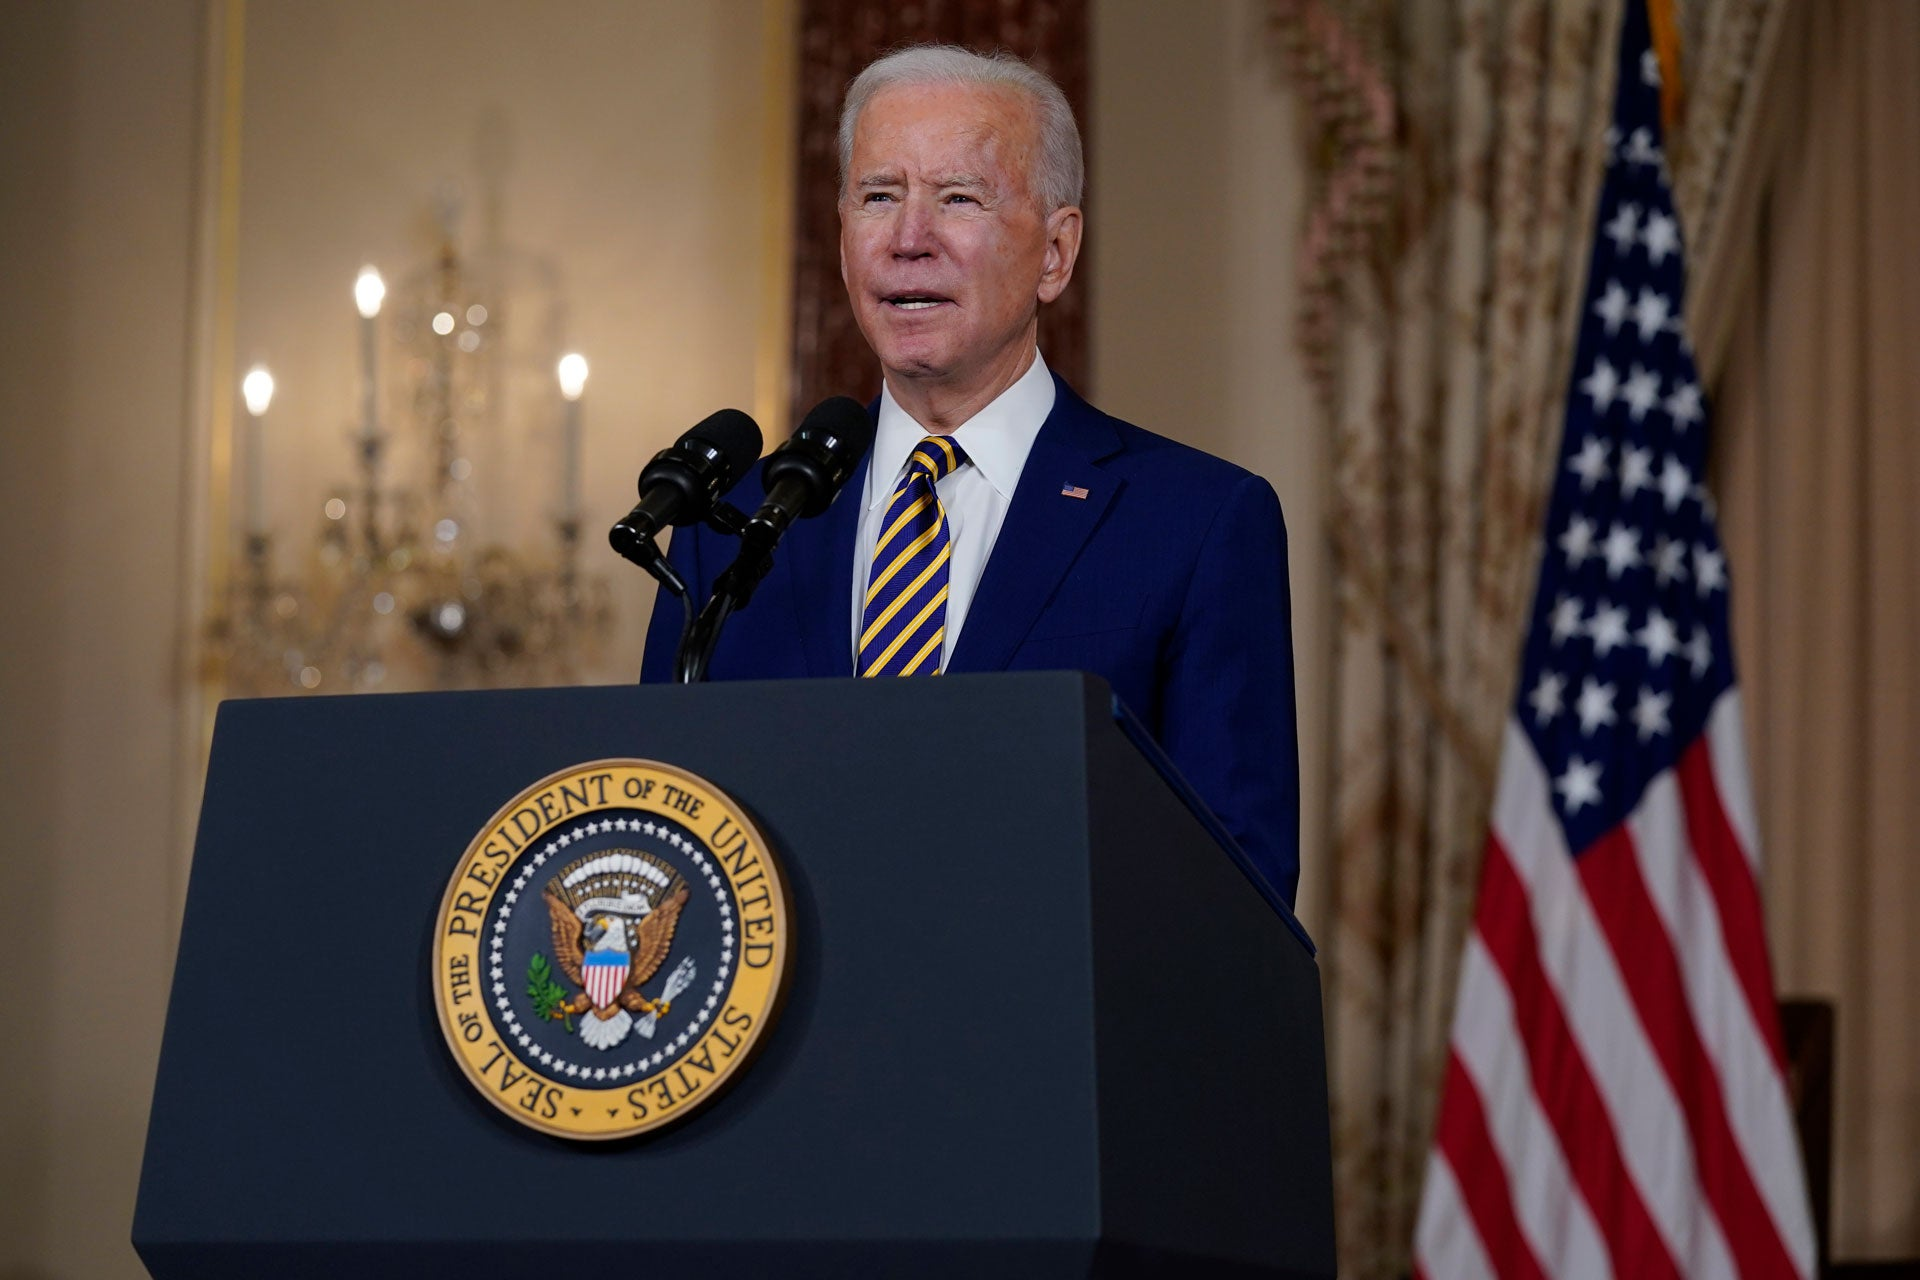 A Human Rights Review of Biden's Foreign Policy Speech